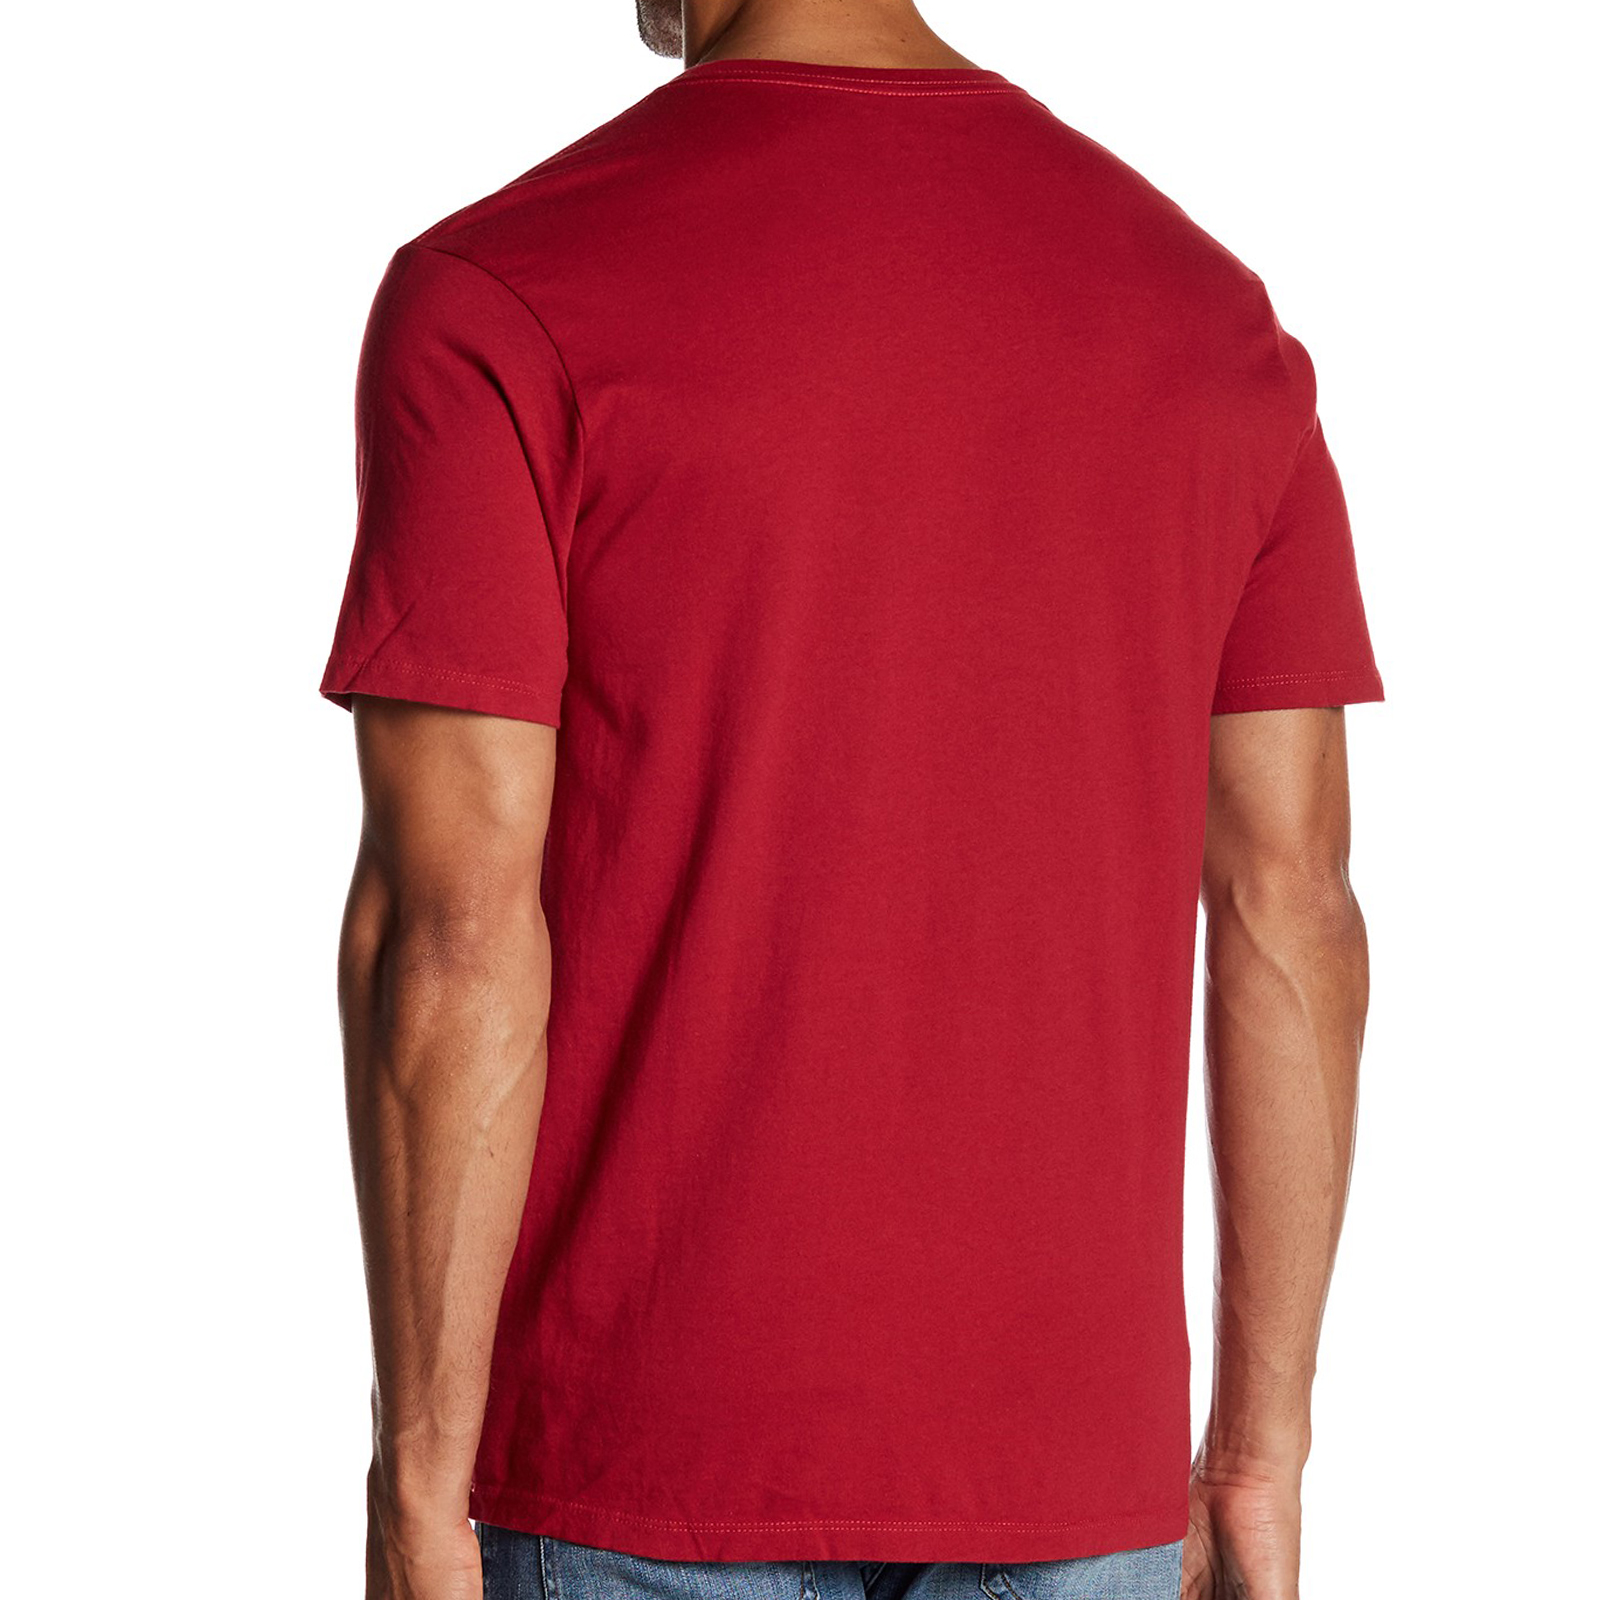 Pungles Online Store Cotton Vneck Short Sleeves Red Tee